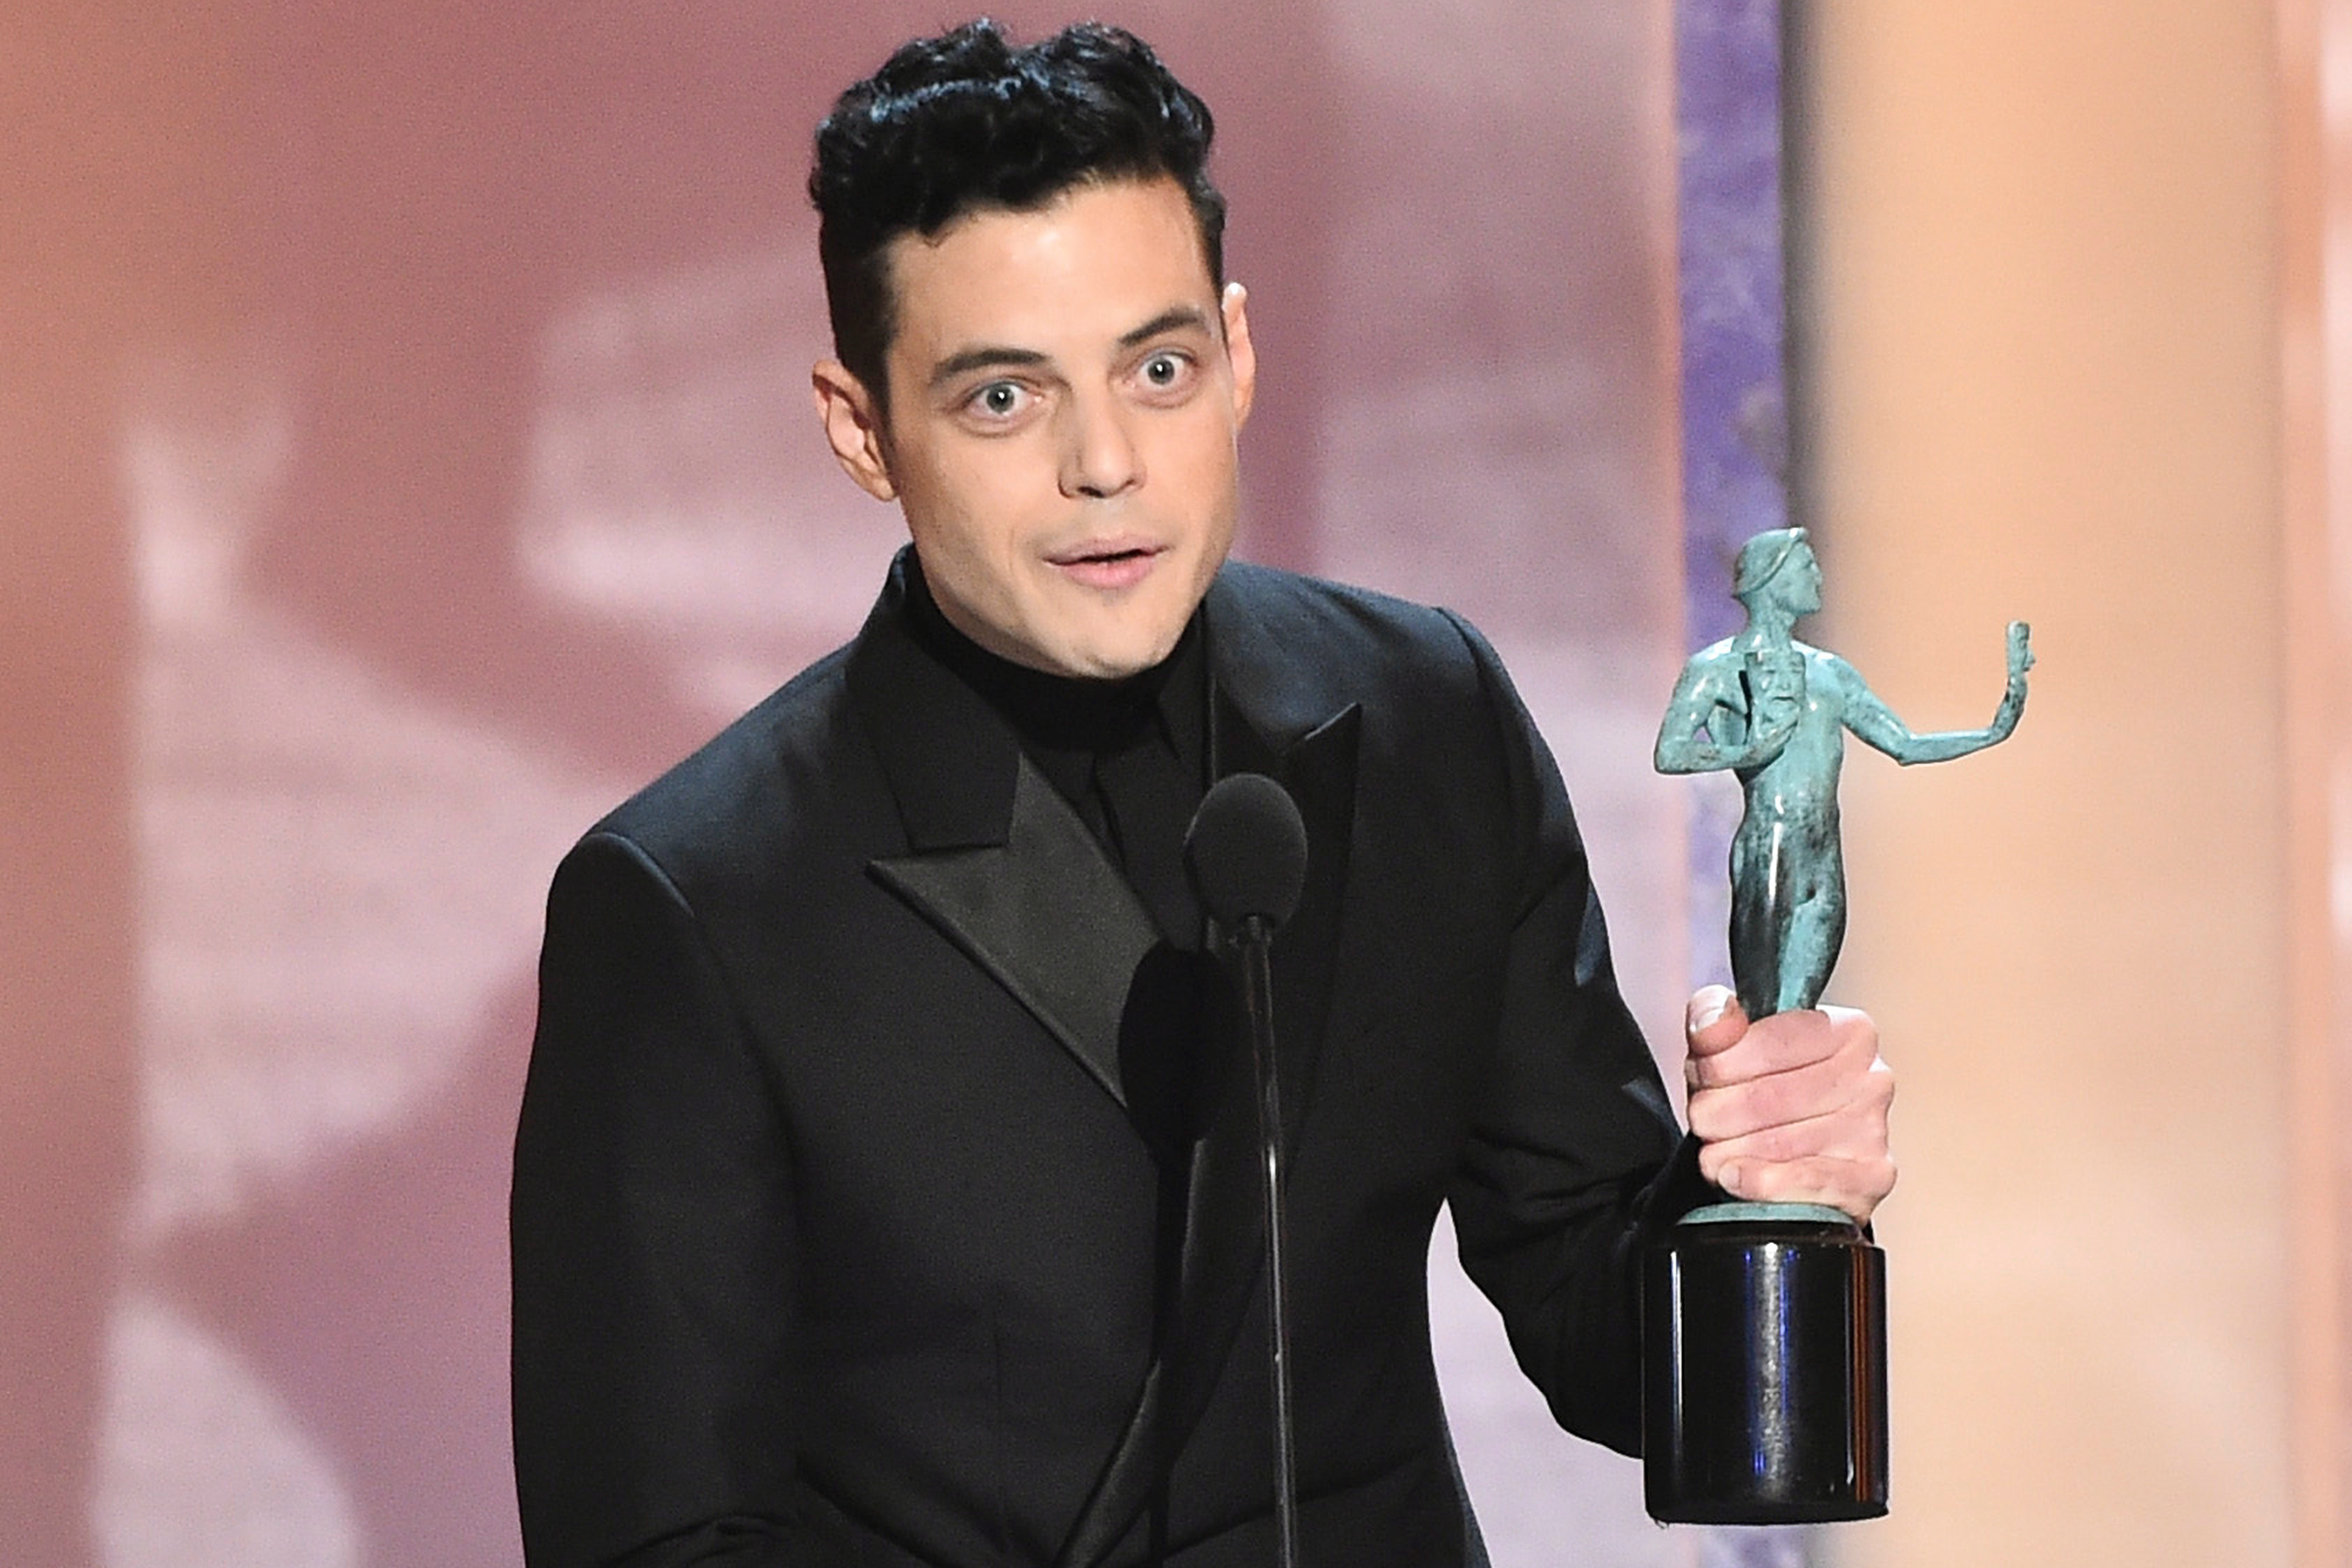 Rami Malek Ethnicity, Religion, Family and Nationality